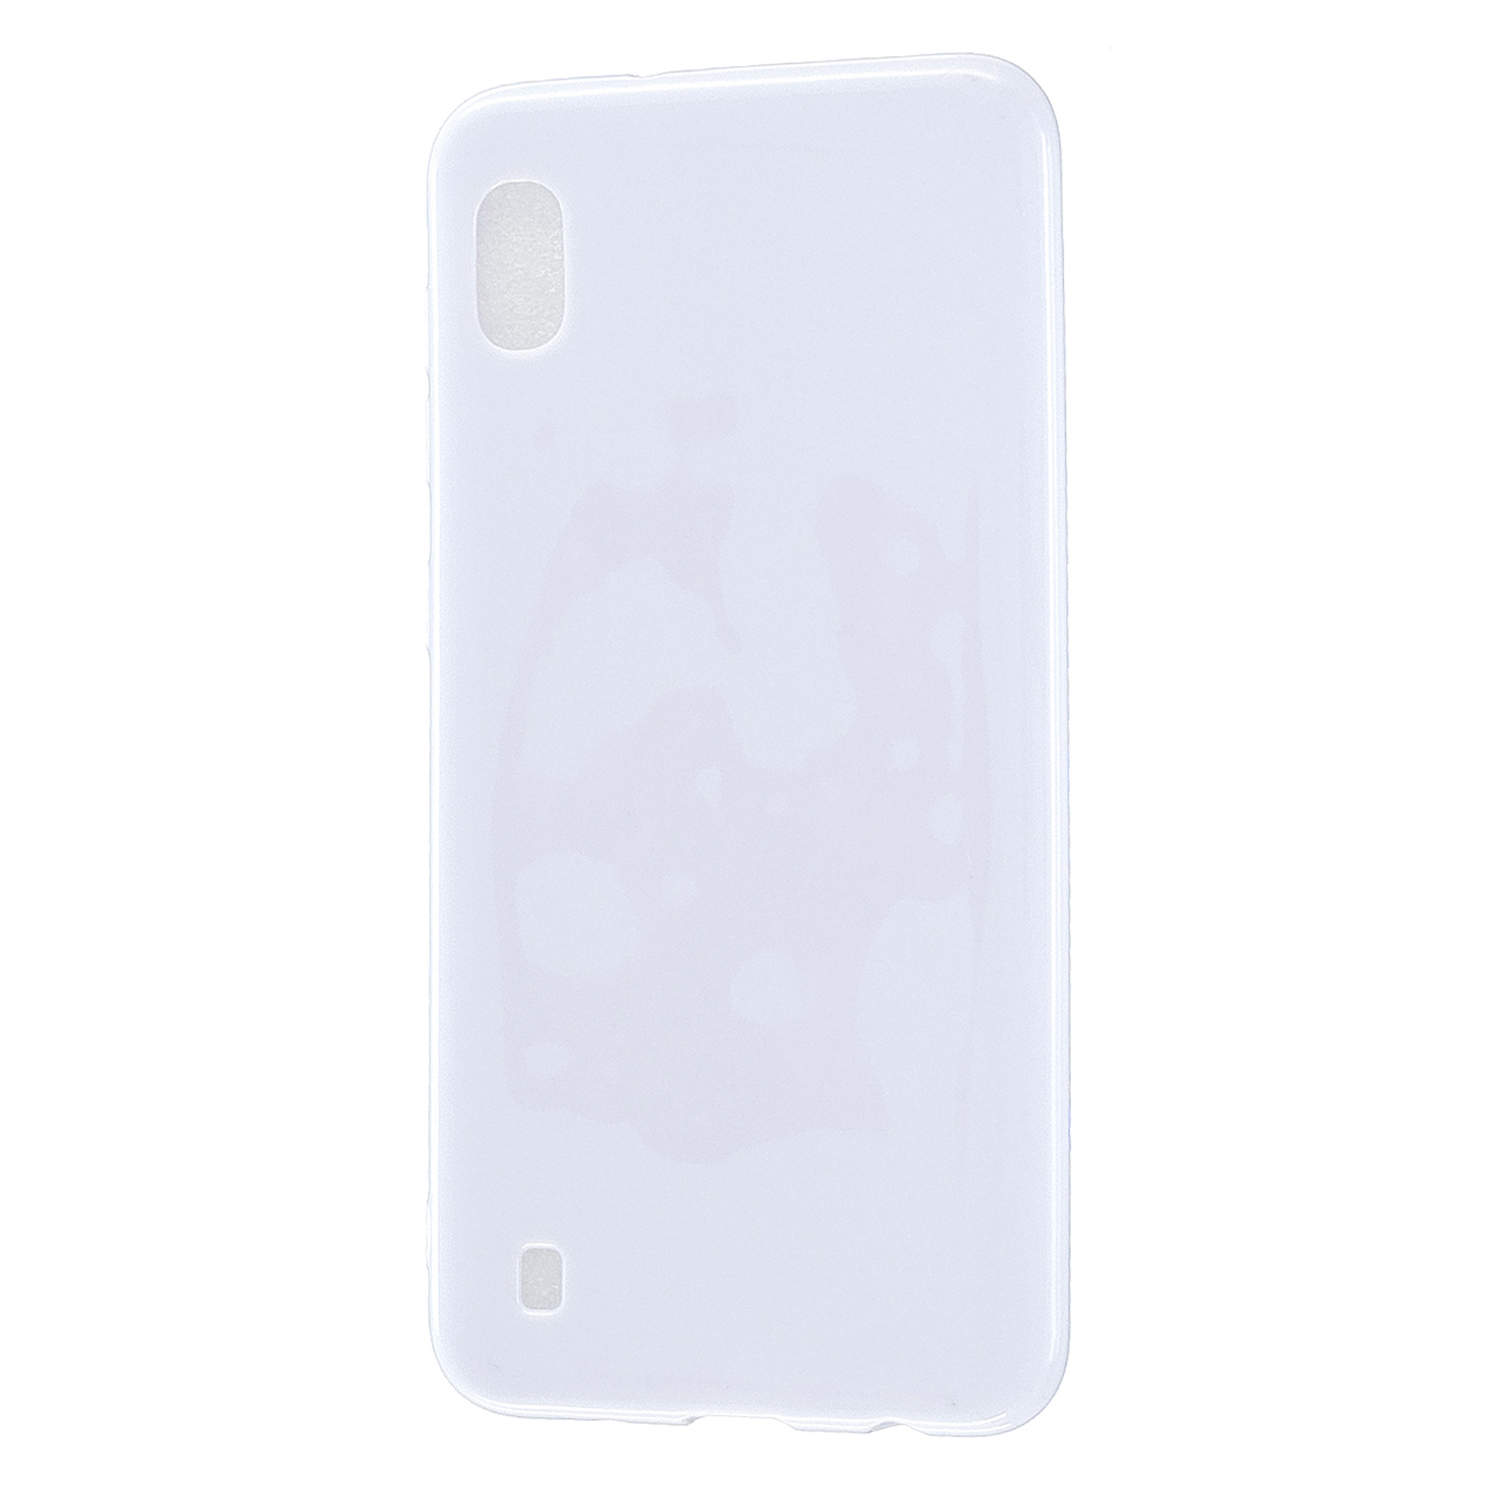 For Samsung A10/A20/A30/A50 Phone Case Soft TPU Overal Protection Precise Cutouts Easy to Install Cellphone Cover  Milk white